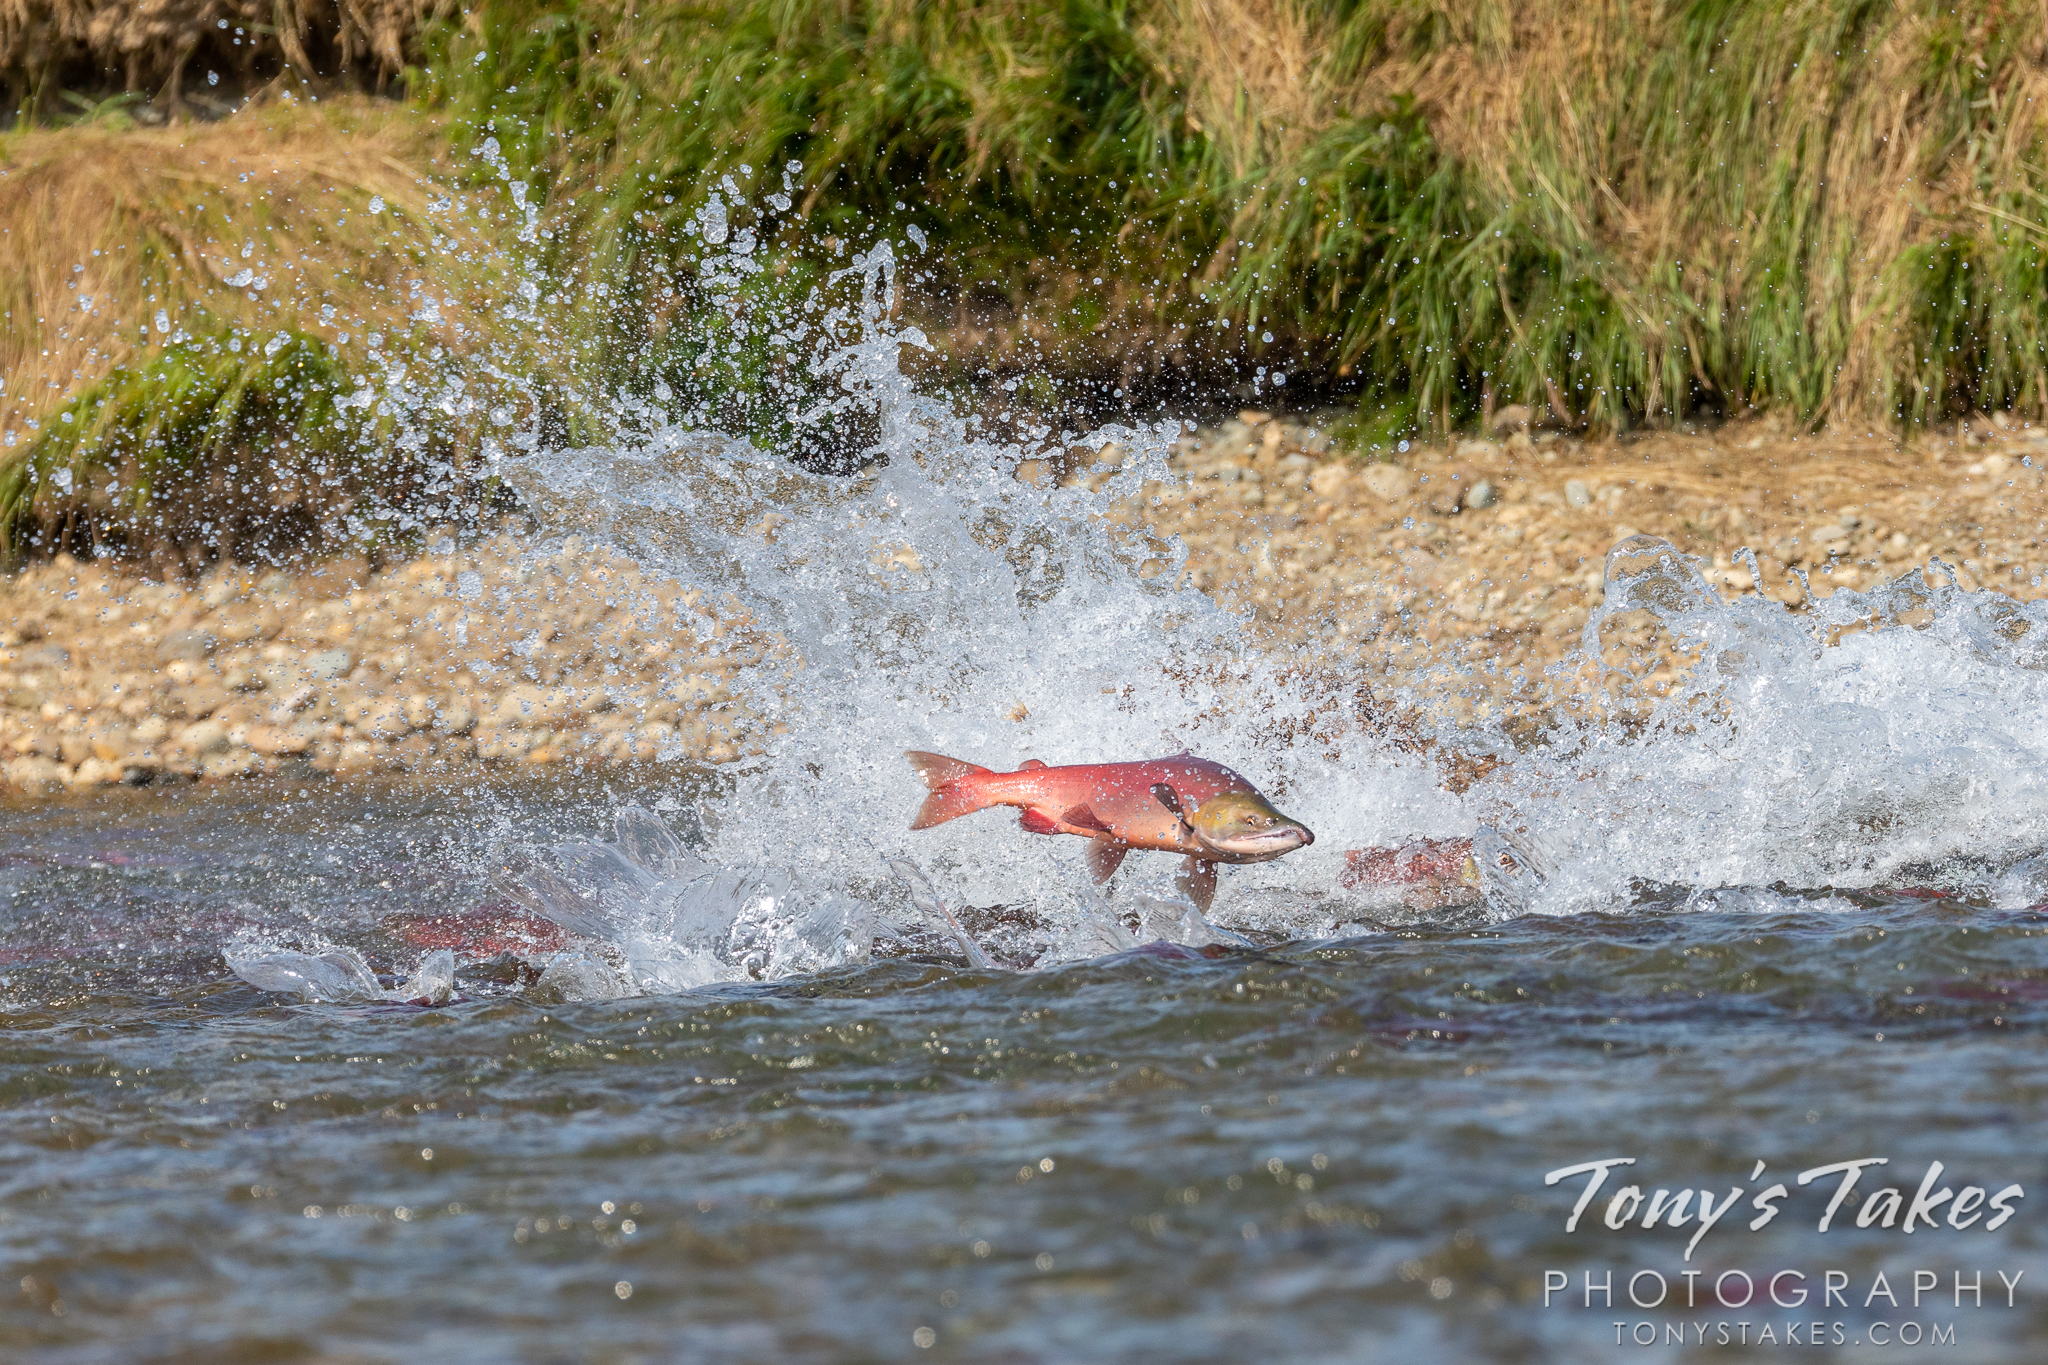 Salmon fly through the air when a brown bear belly flops into the river after them. (© Tony's Takes)